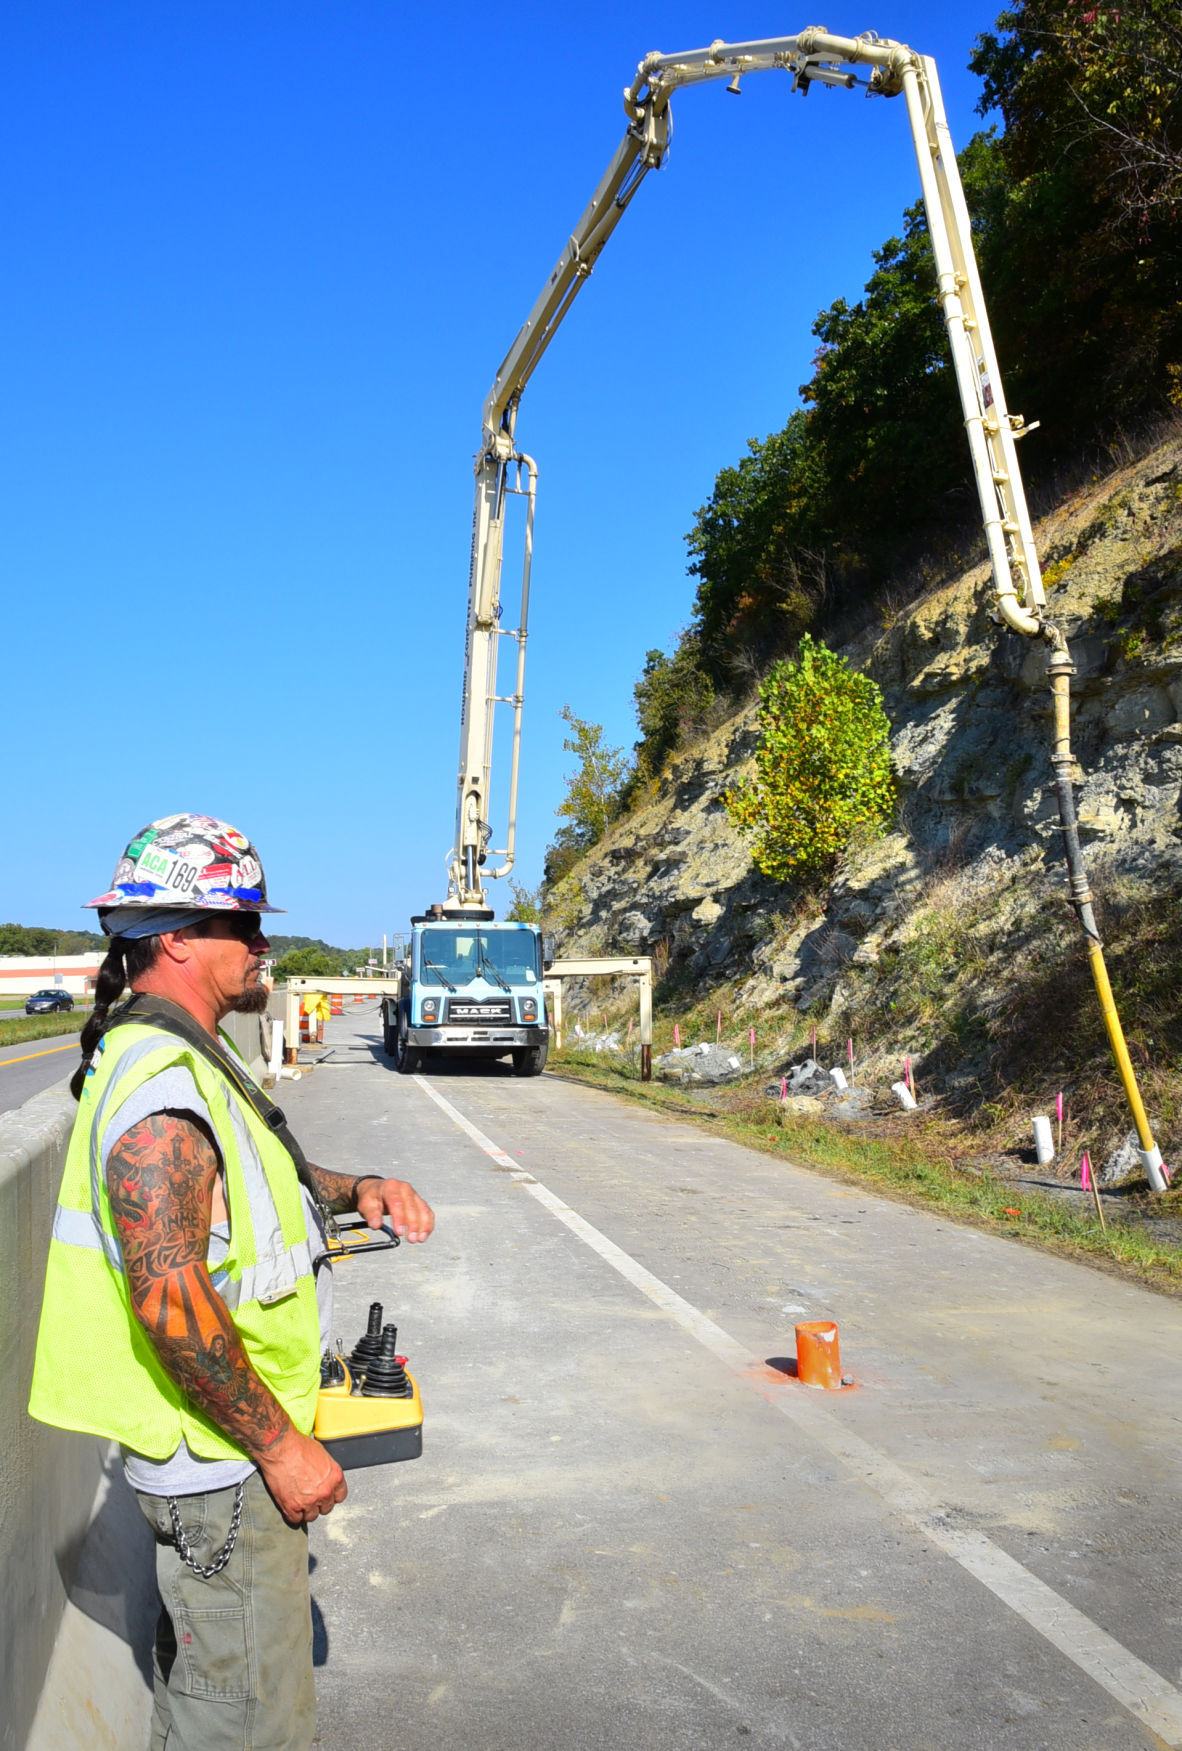 Work underway to stabilize Route 33 over abandoned mine